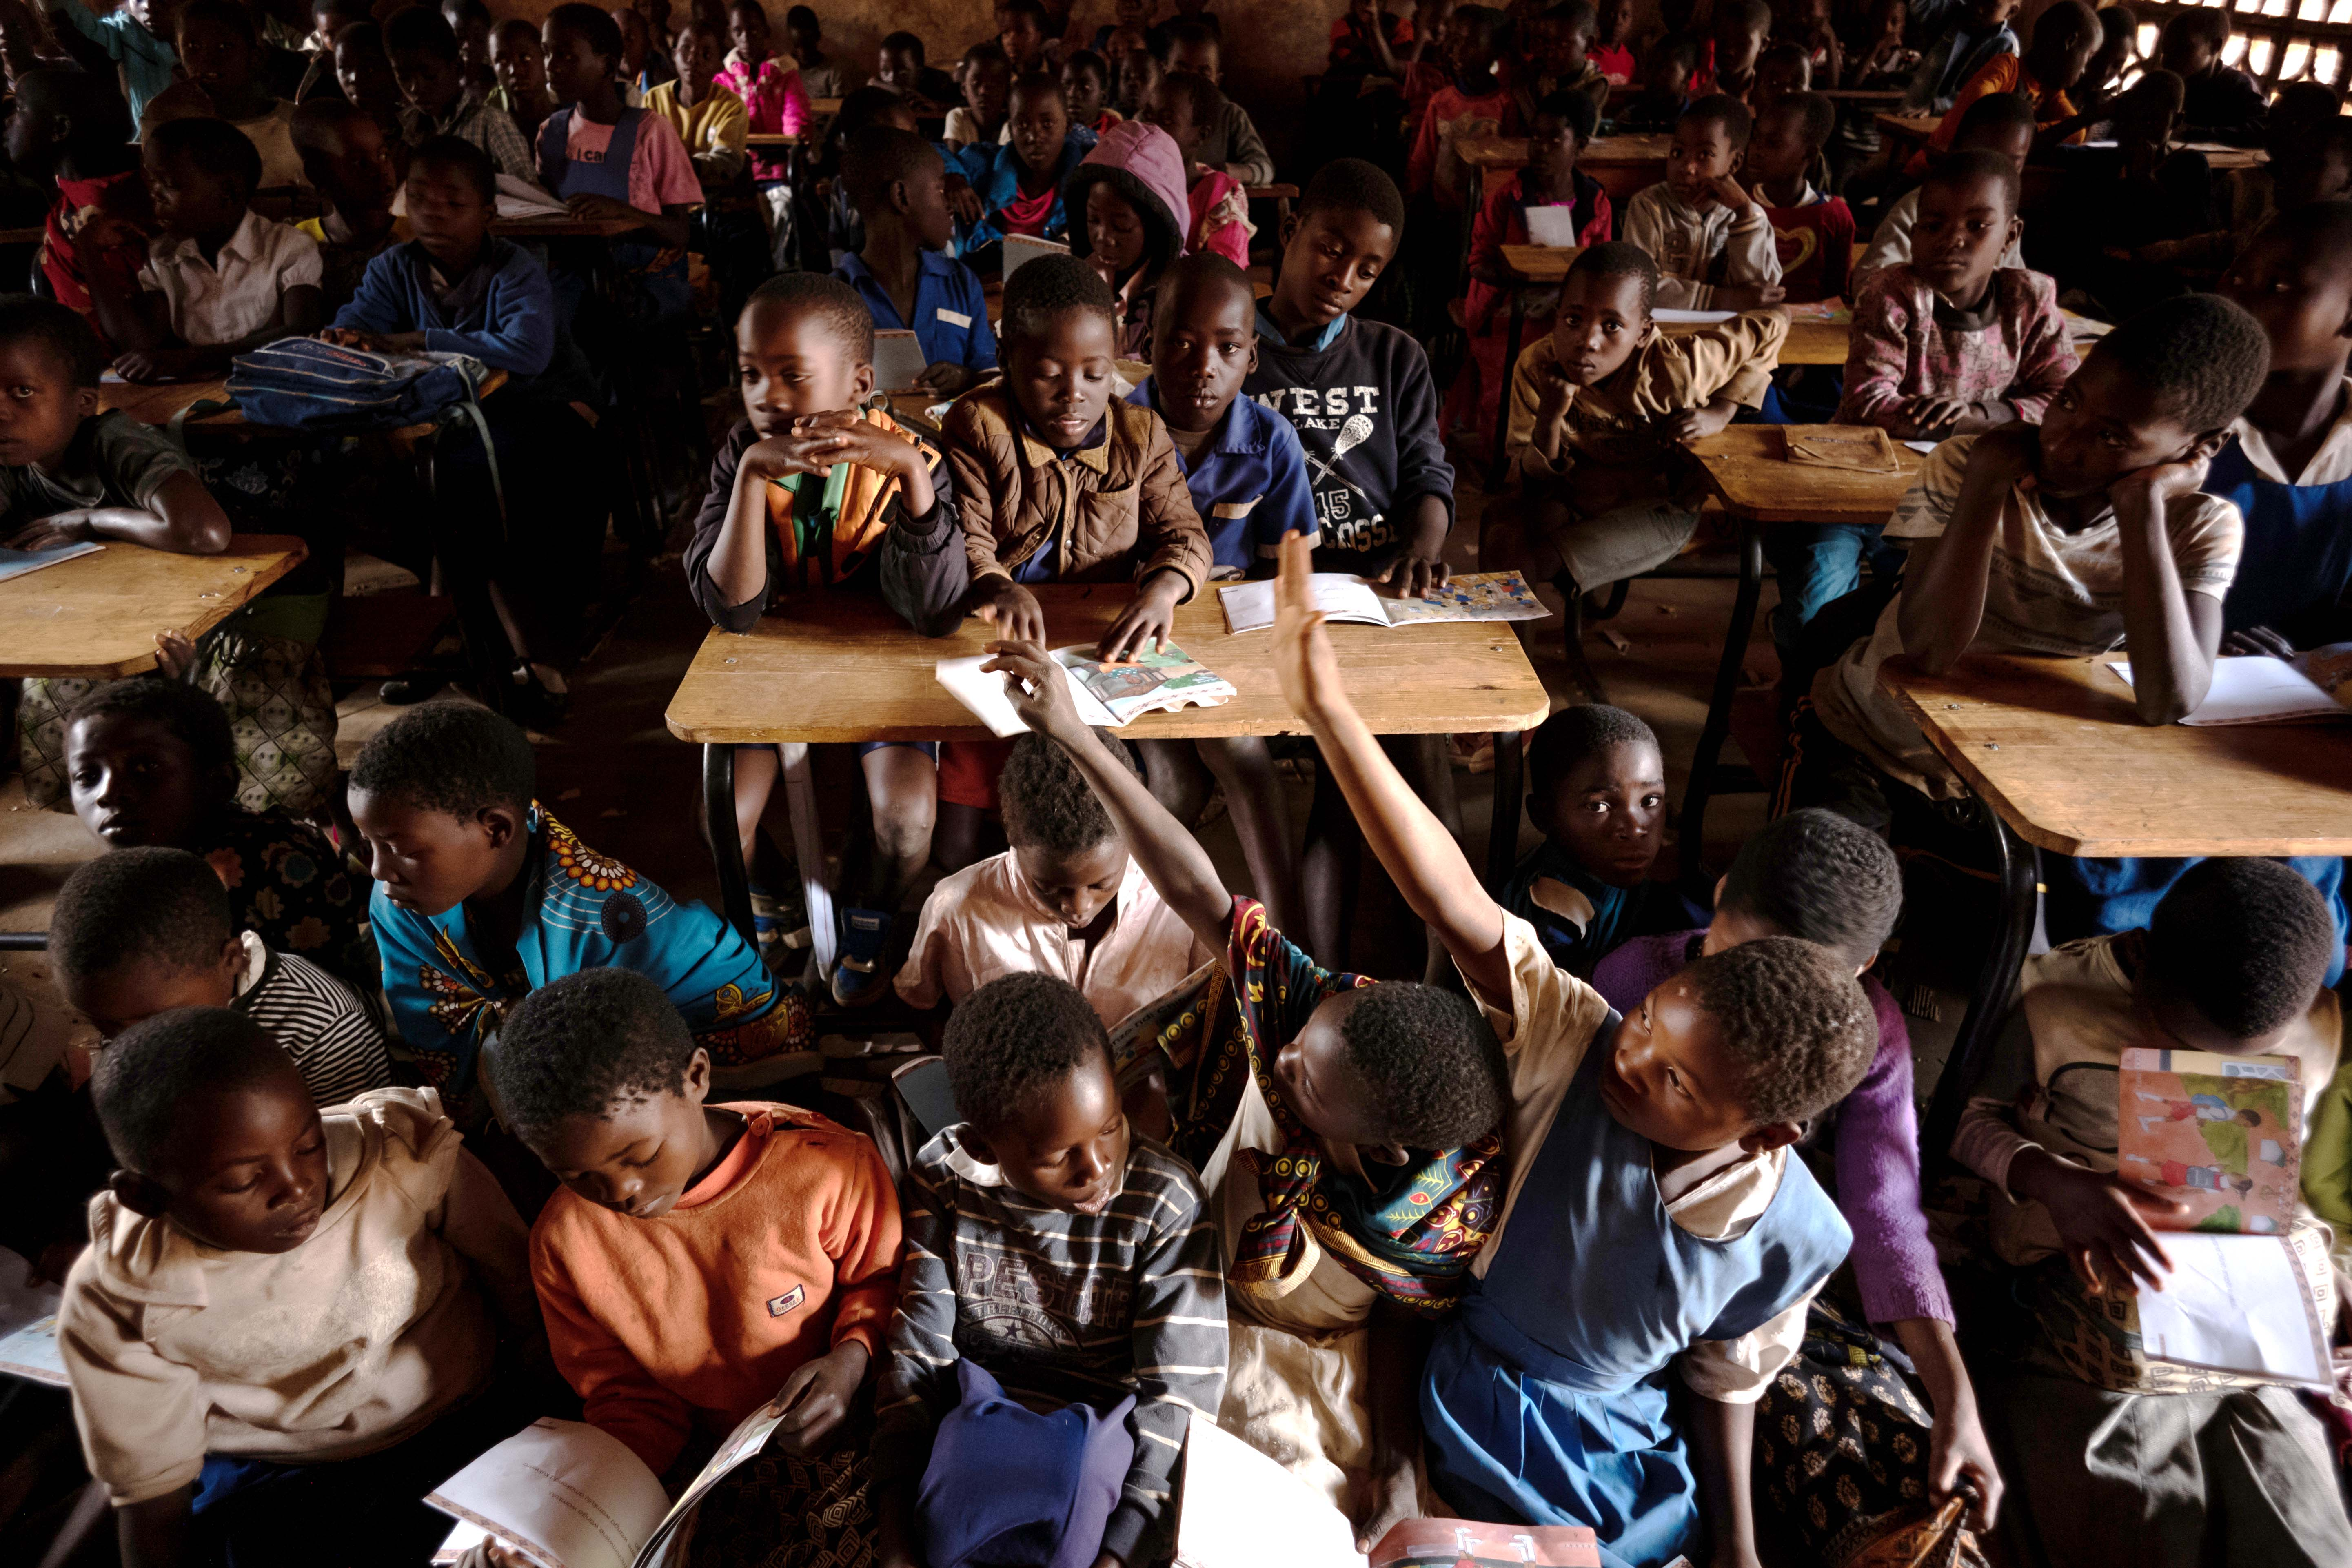 Despite sitting in a packed and dimly lit classroom, students are eager to learn because many of them have been out of school.